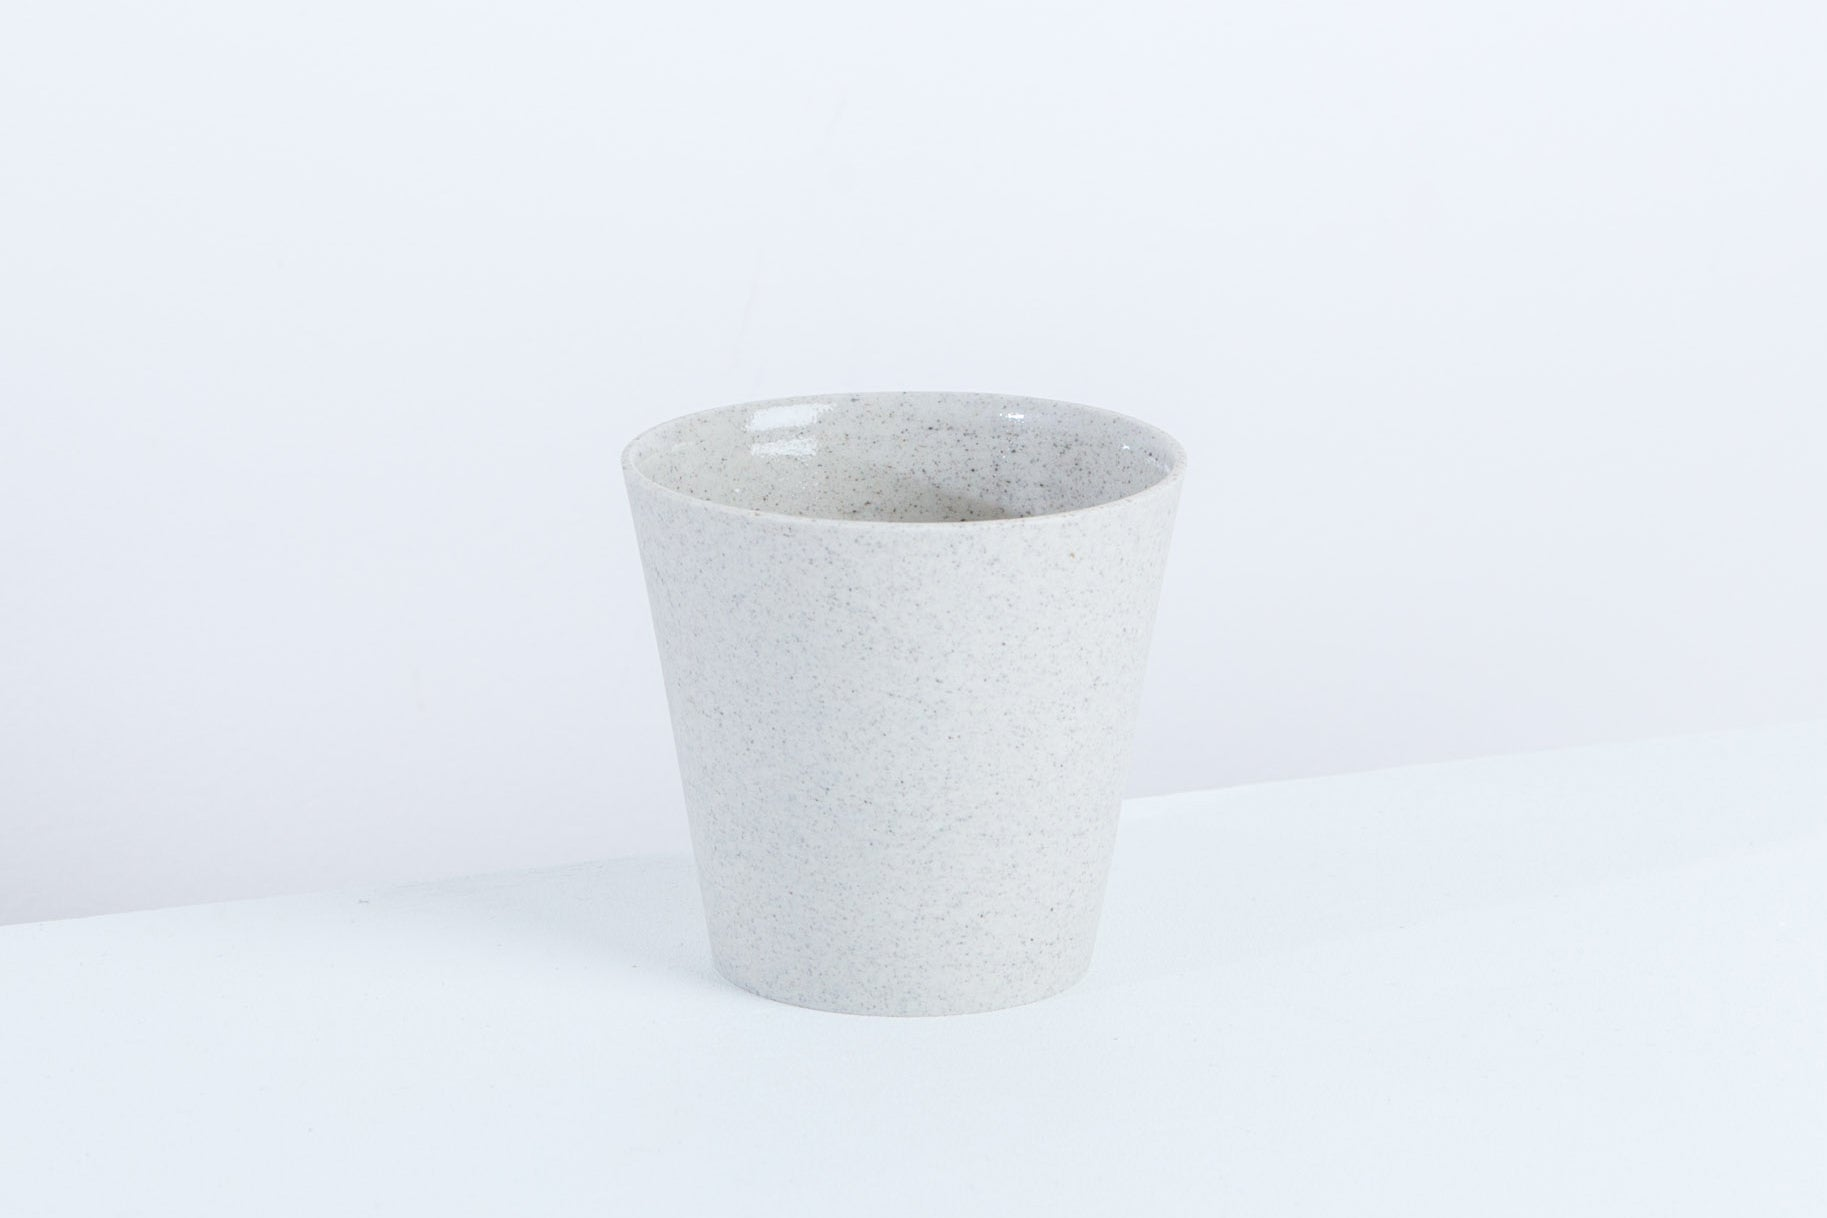 Granite-coloured cup